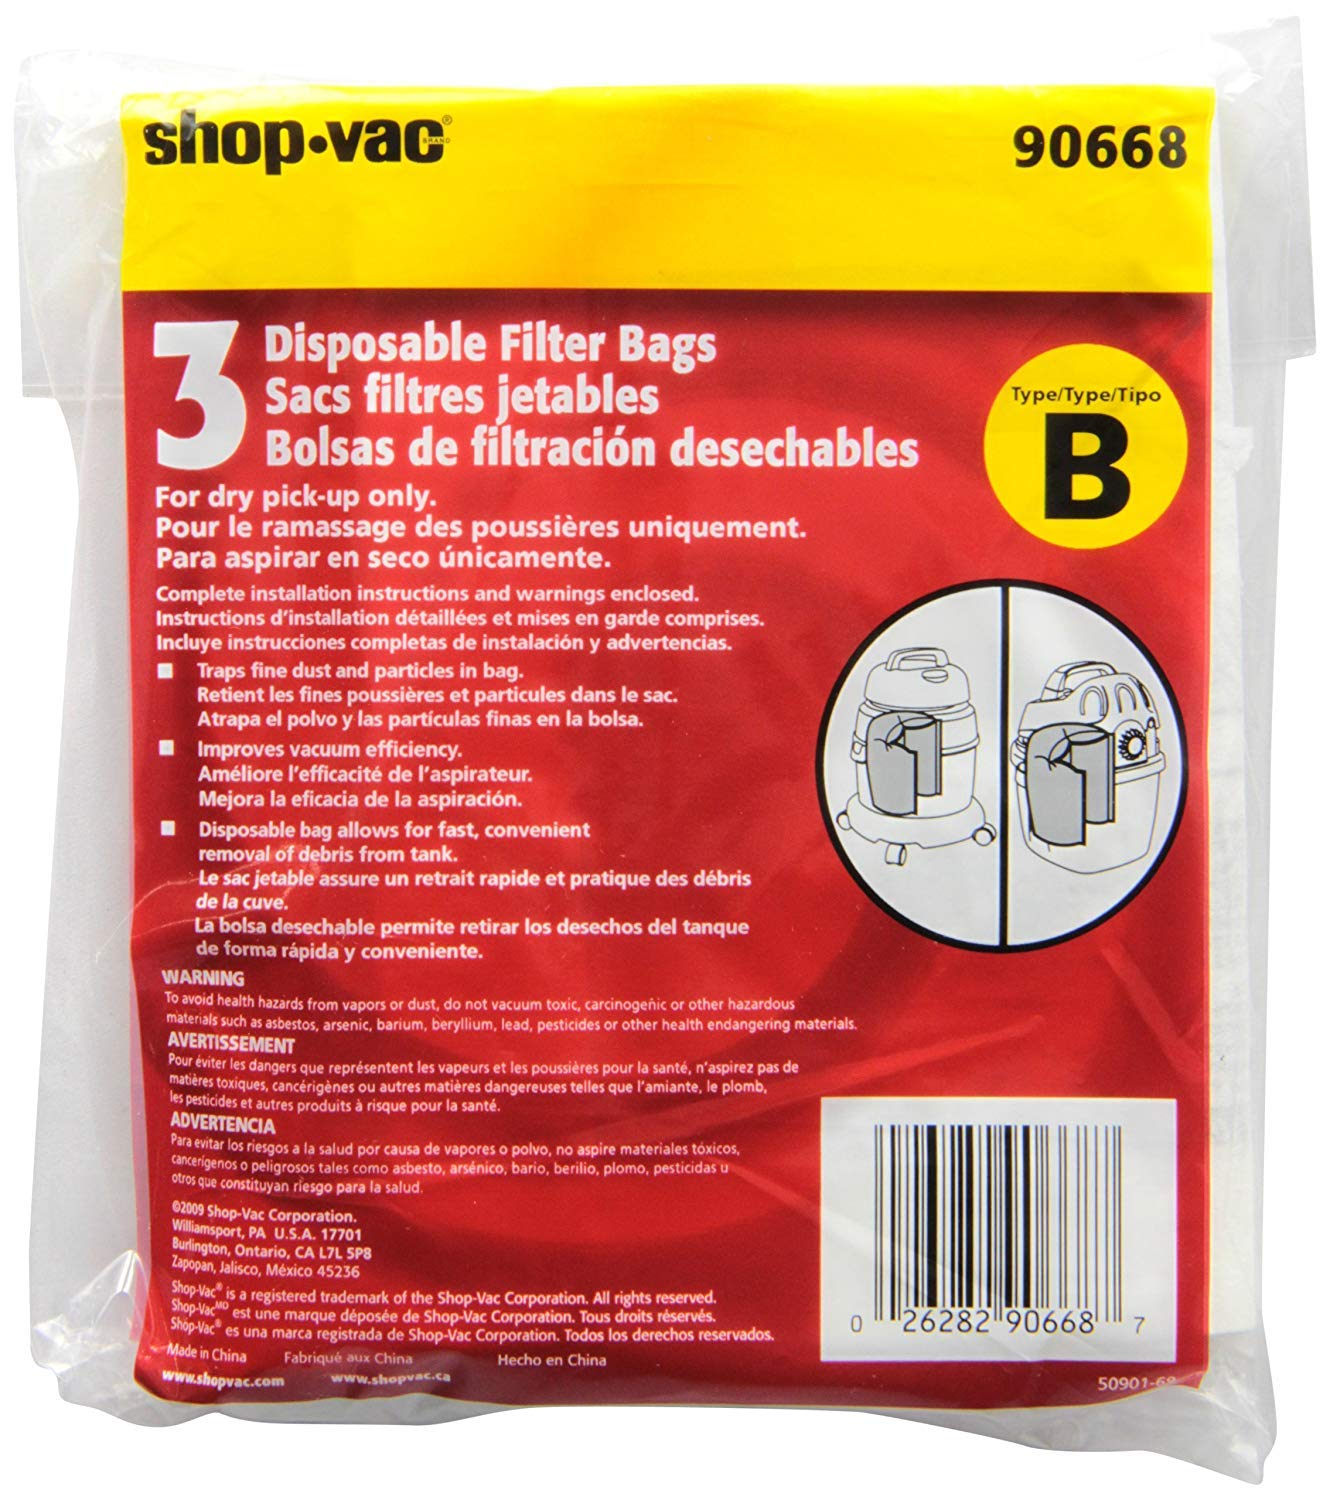 Shop-Vac 9066800 2-2.5 Gallon All Around Collection Bag 3-Pack